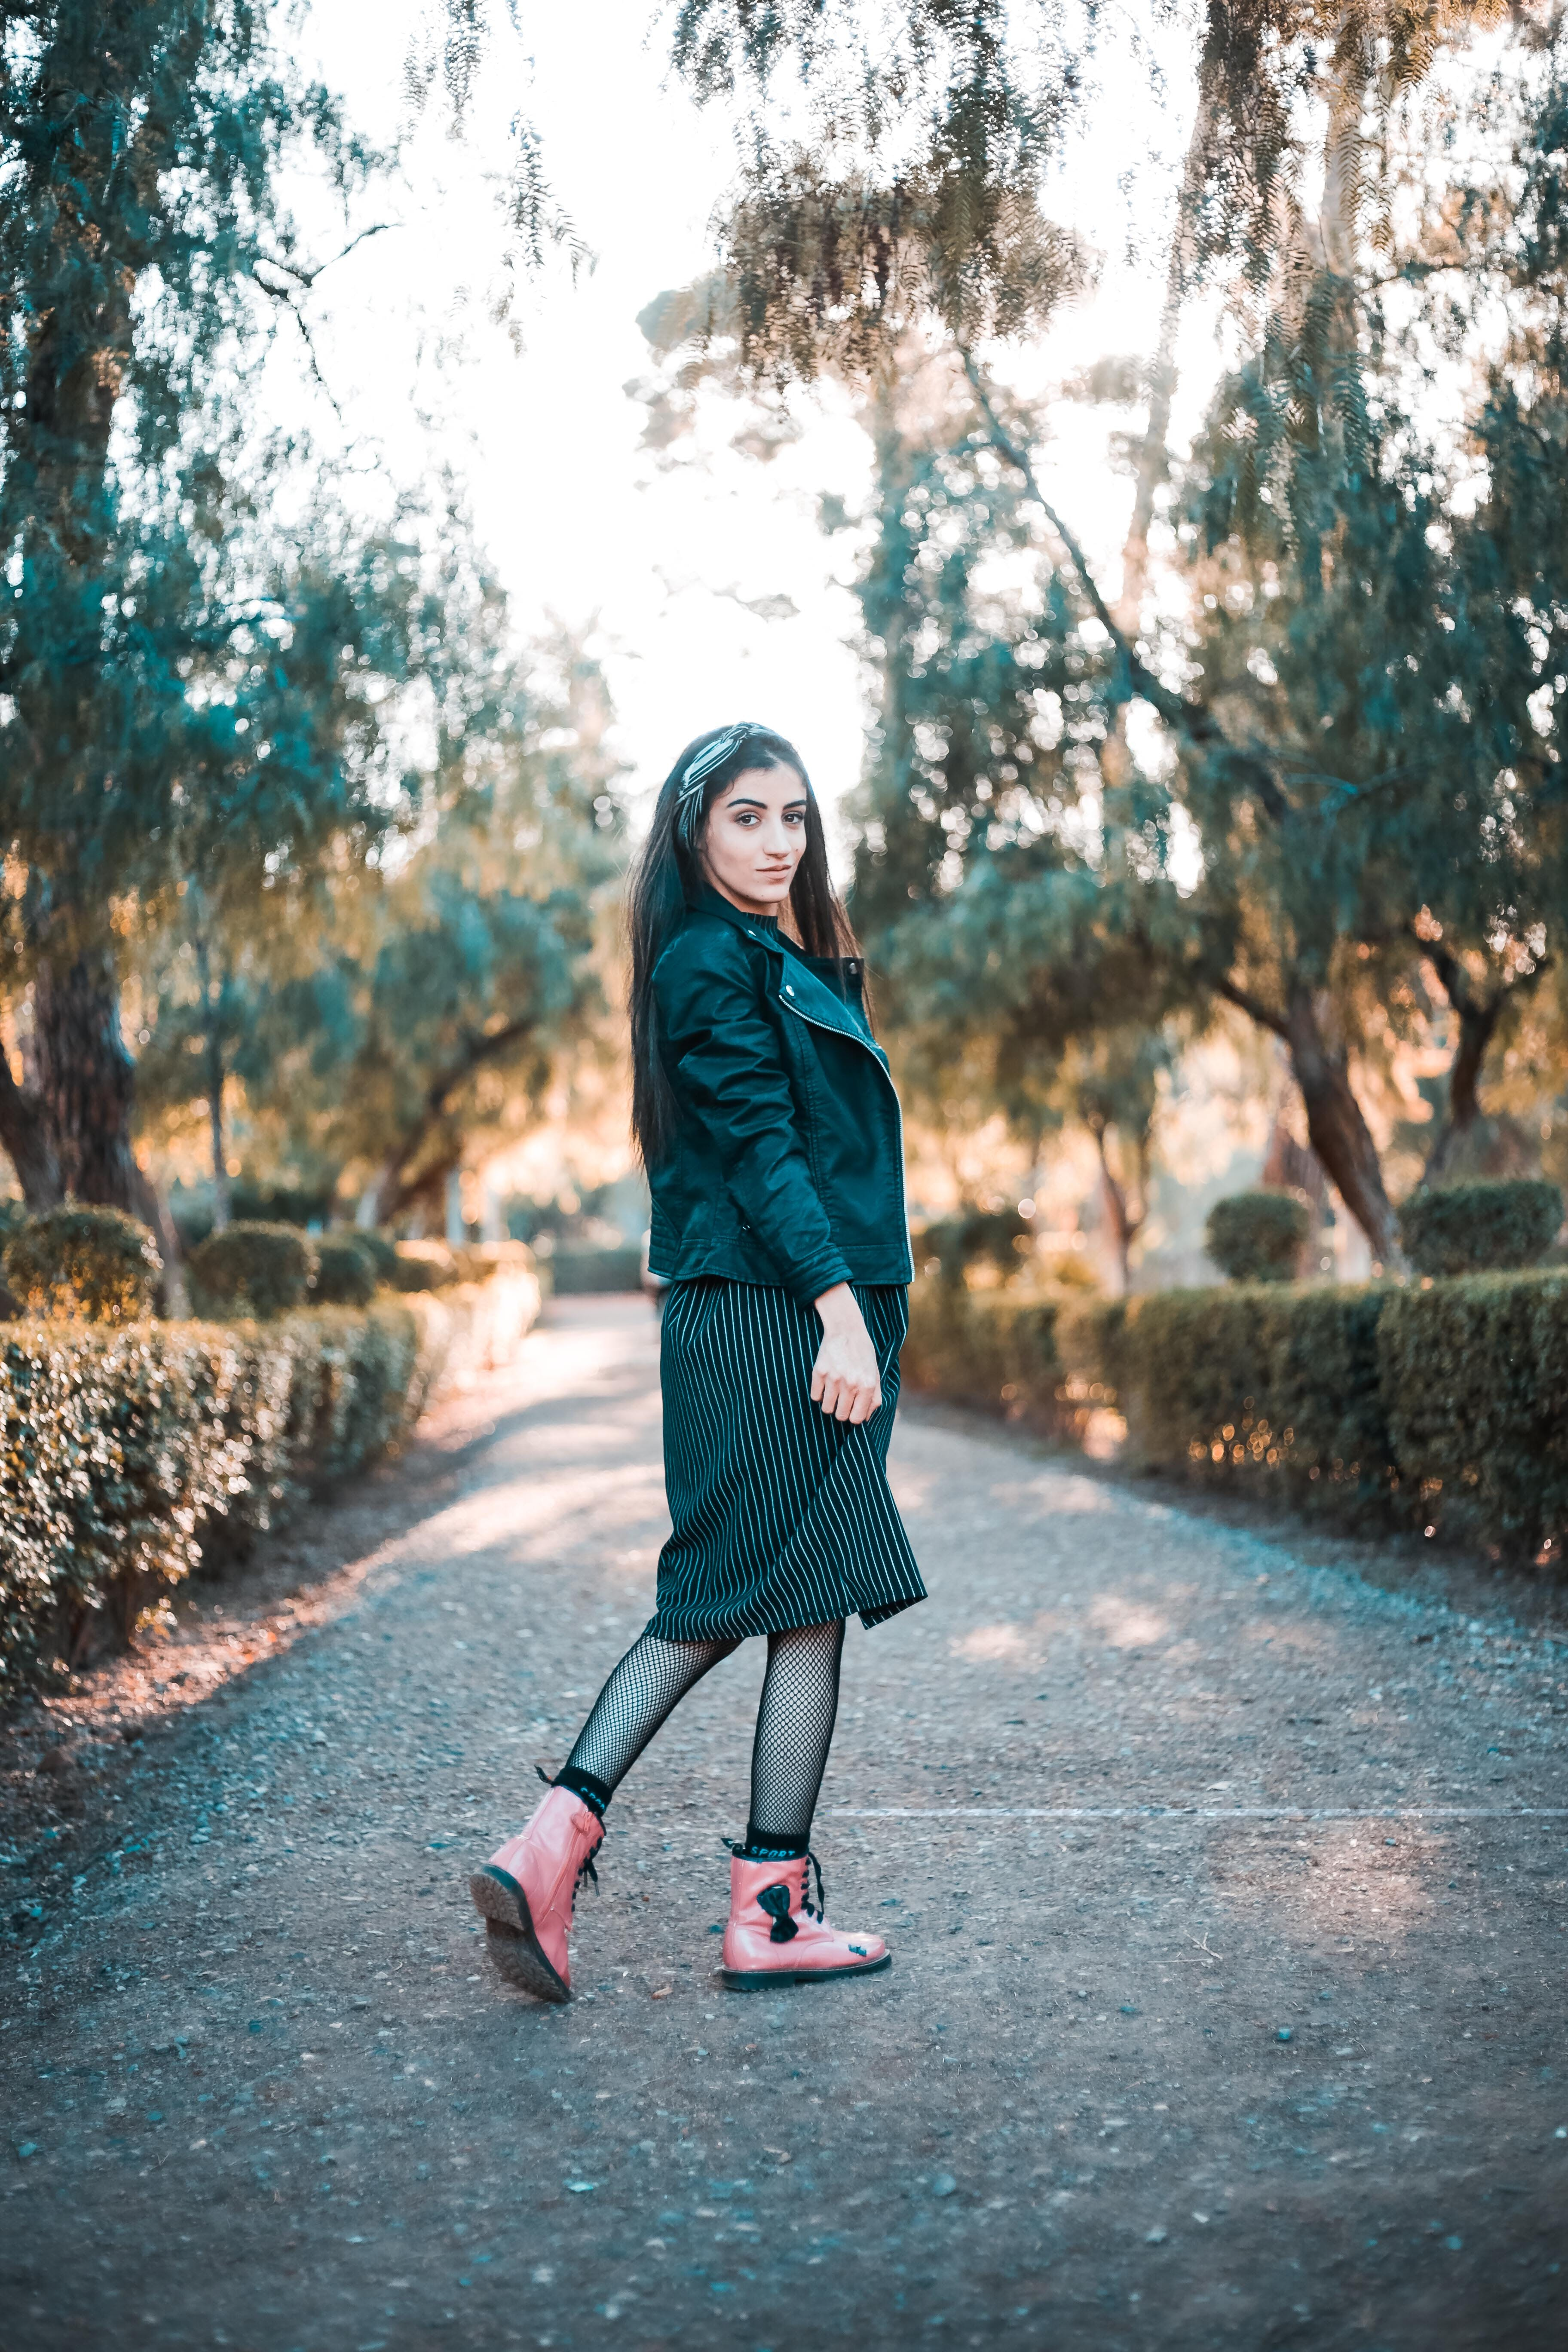 Woman in Black Jacket, Skirt, and Pink Boots